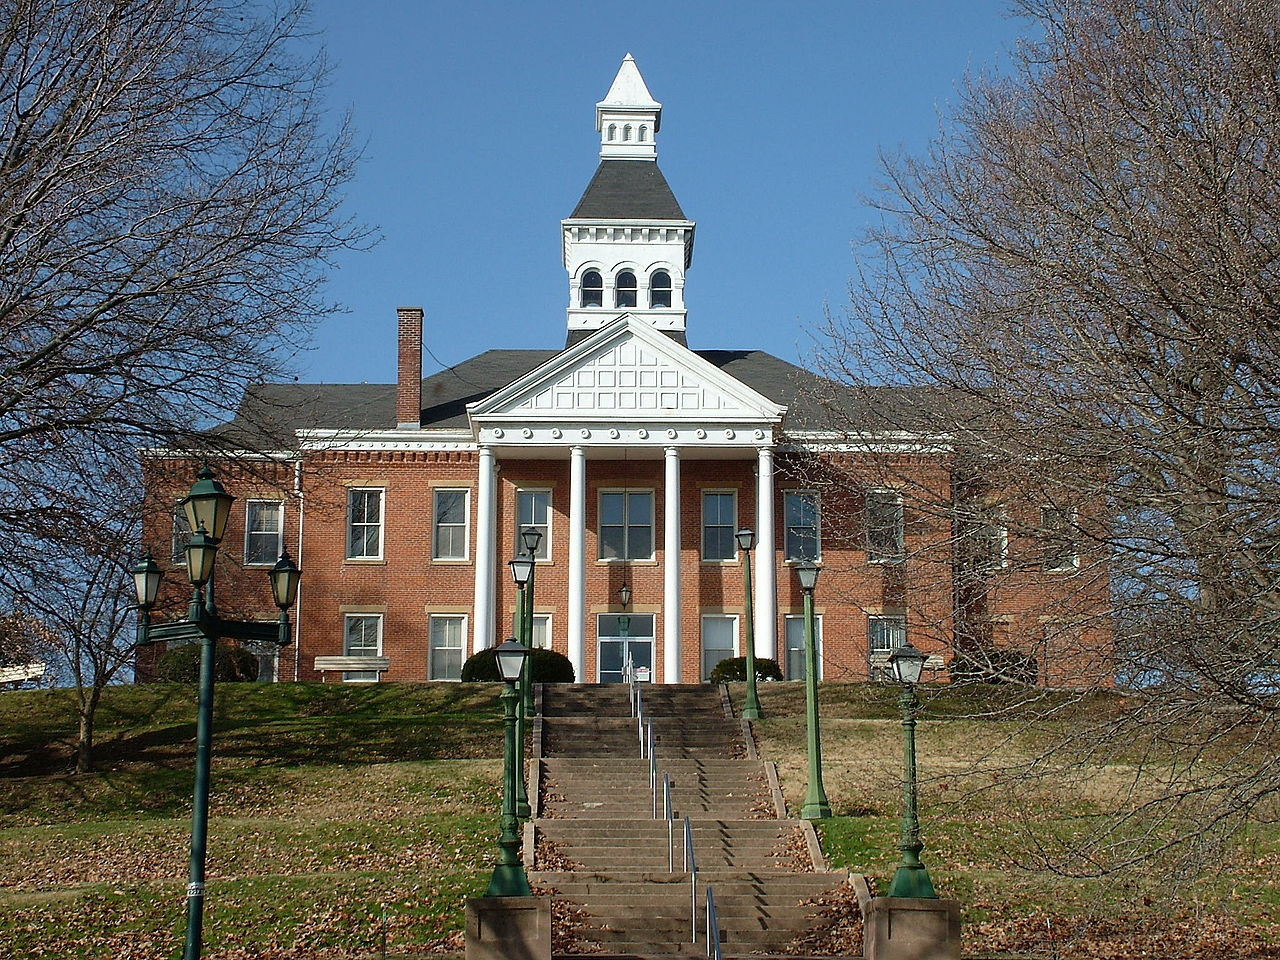 The Cape Girardeau Court of Common Pleas is situated prominently on a hill overlooking the Mississippi River. It was built in 1854 and has served as a courthouse ever since.